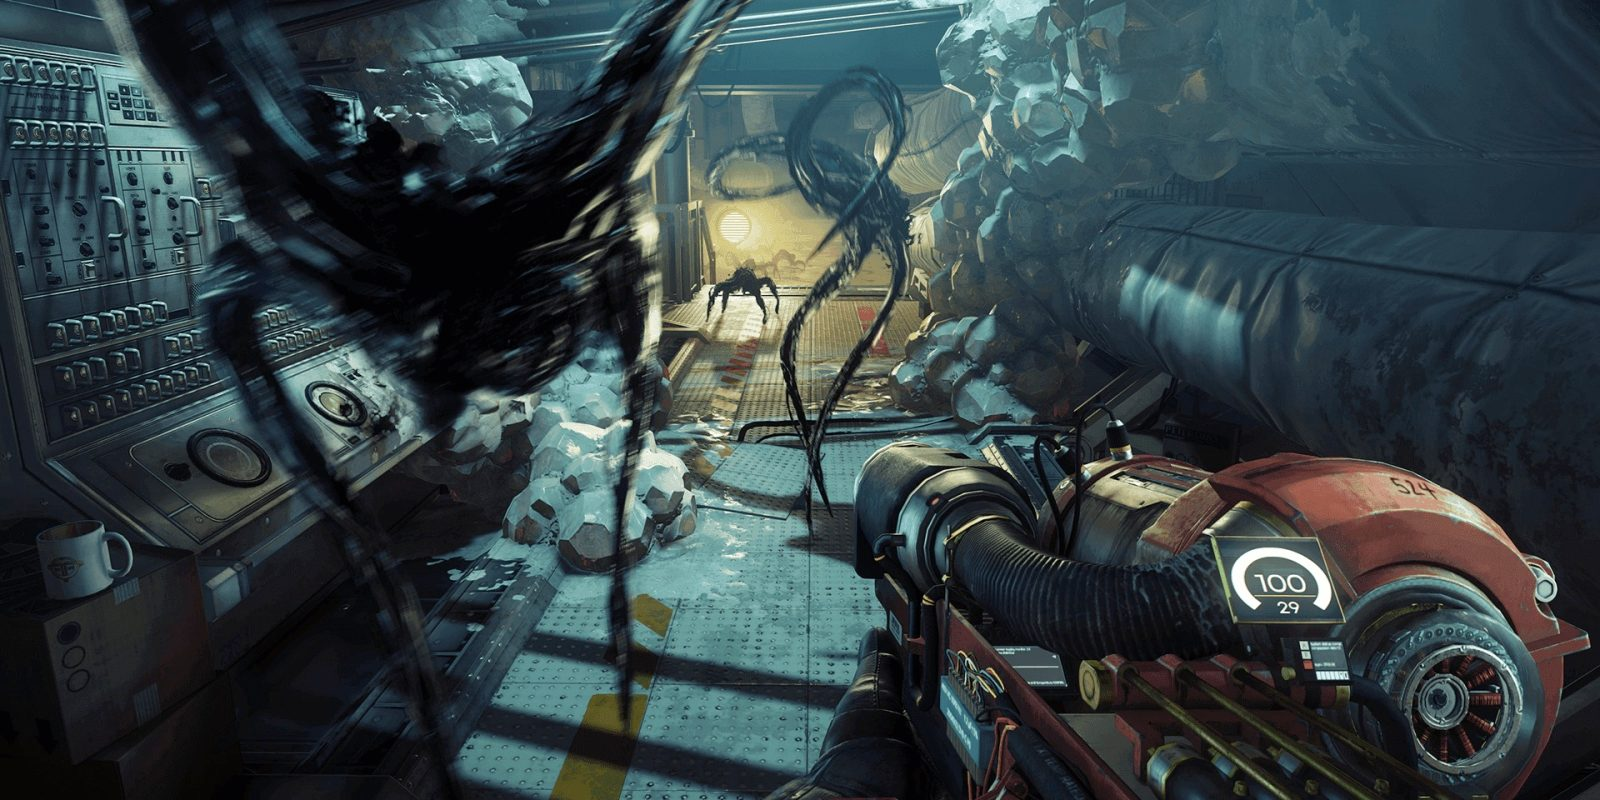 Today's Best Game Deals: Prey $6, Blasphemous $22.50, Final Fantasy X/X2 $35, more